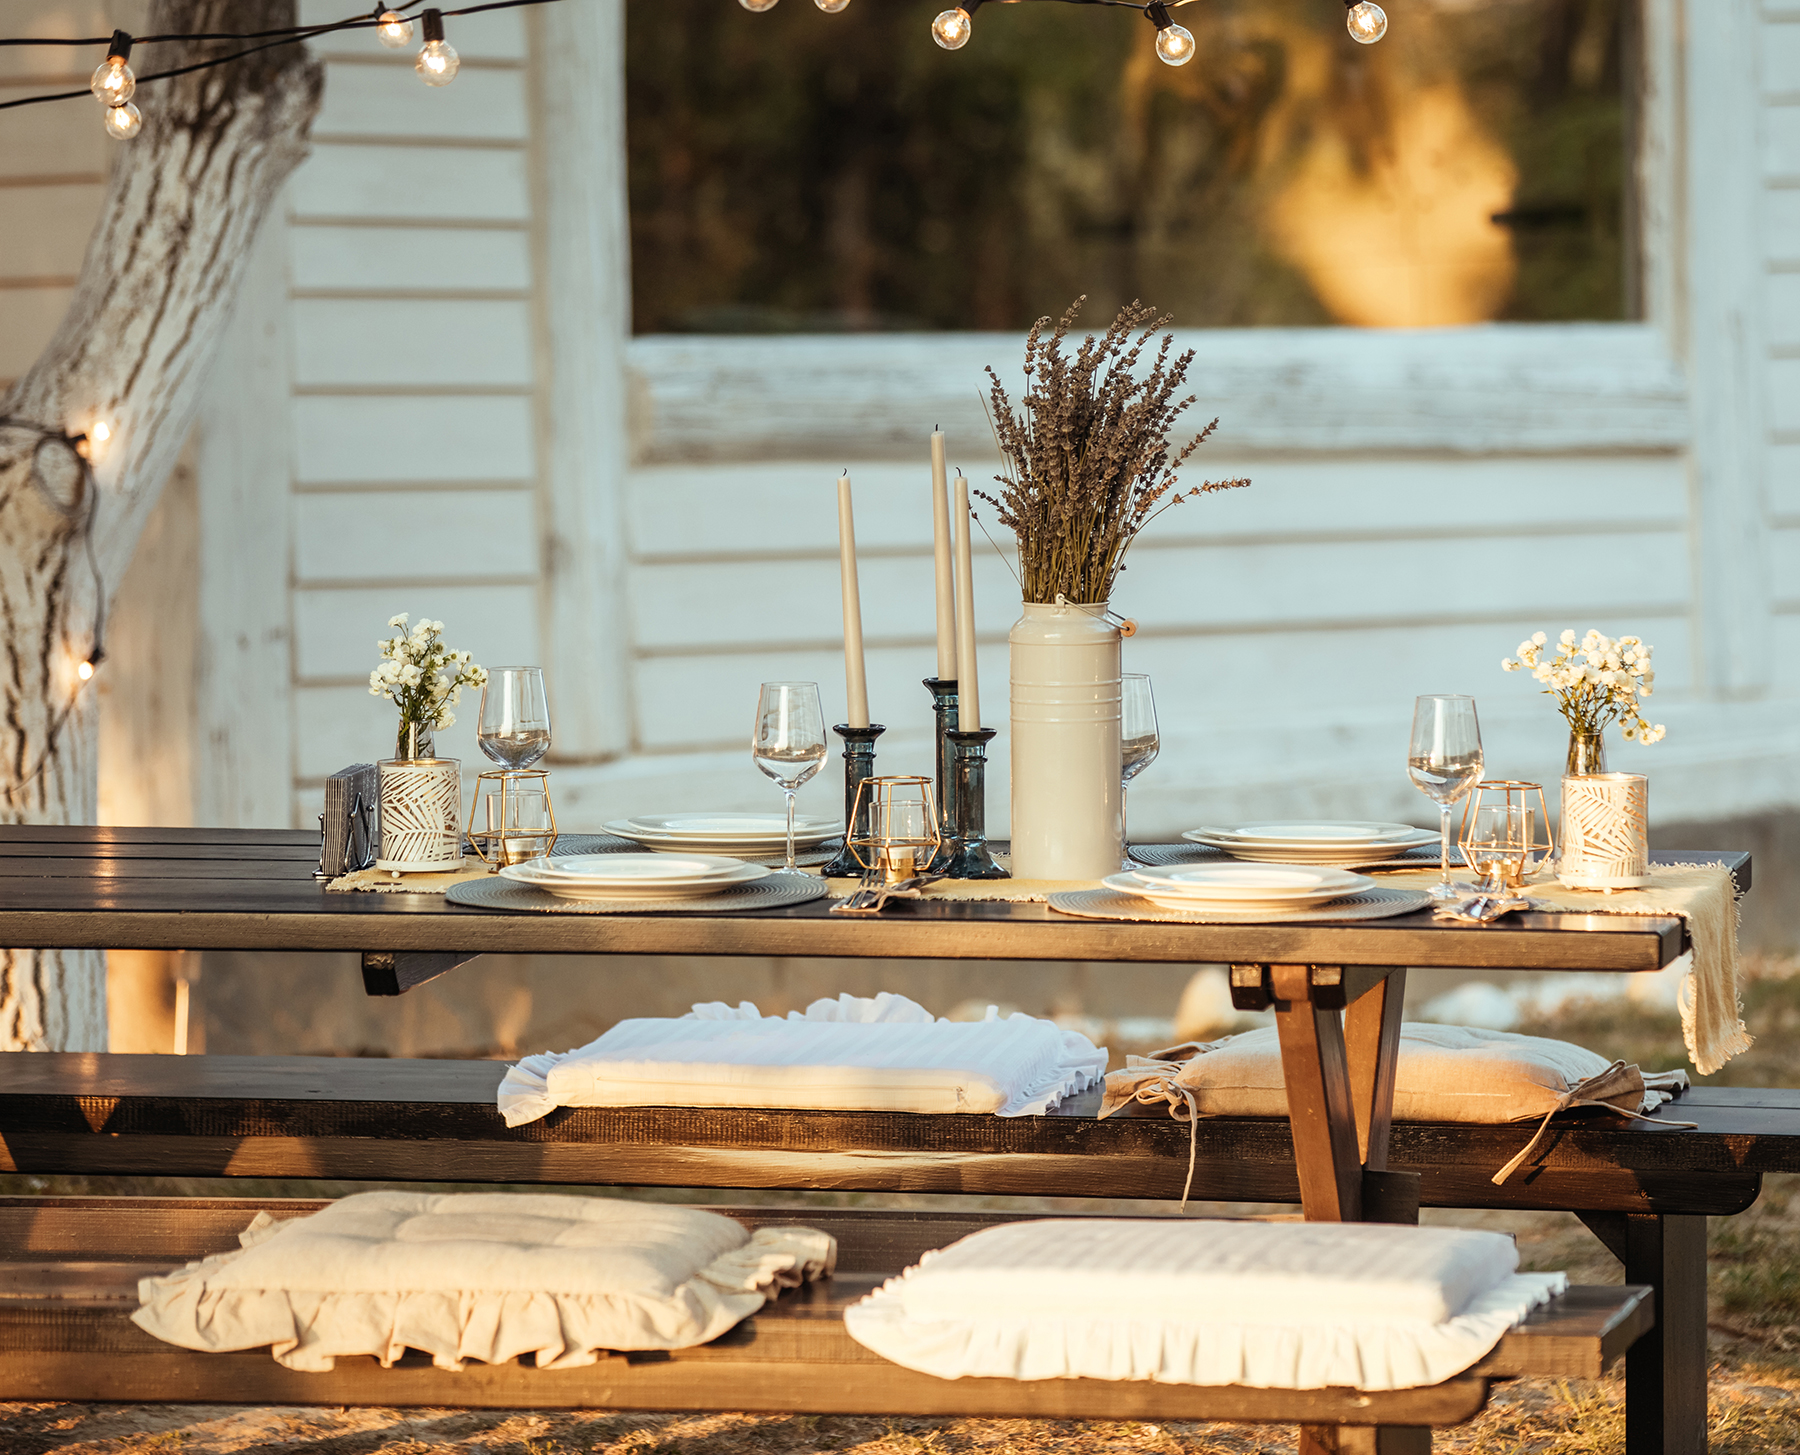 24 Outdoor Entertaining Tips That'll Save You Tons of Time